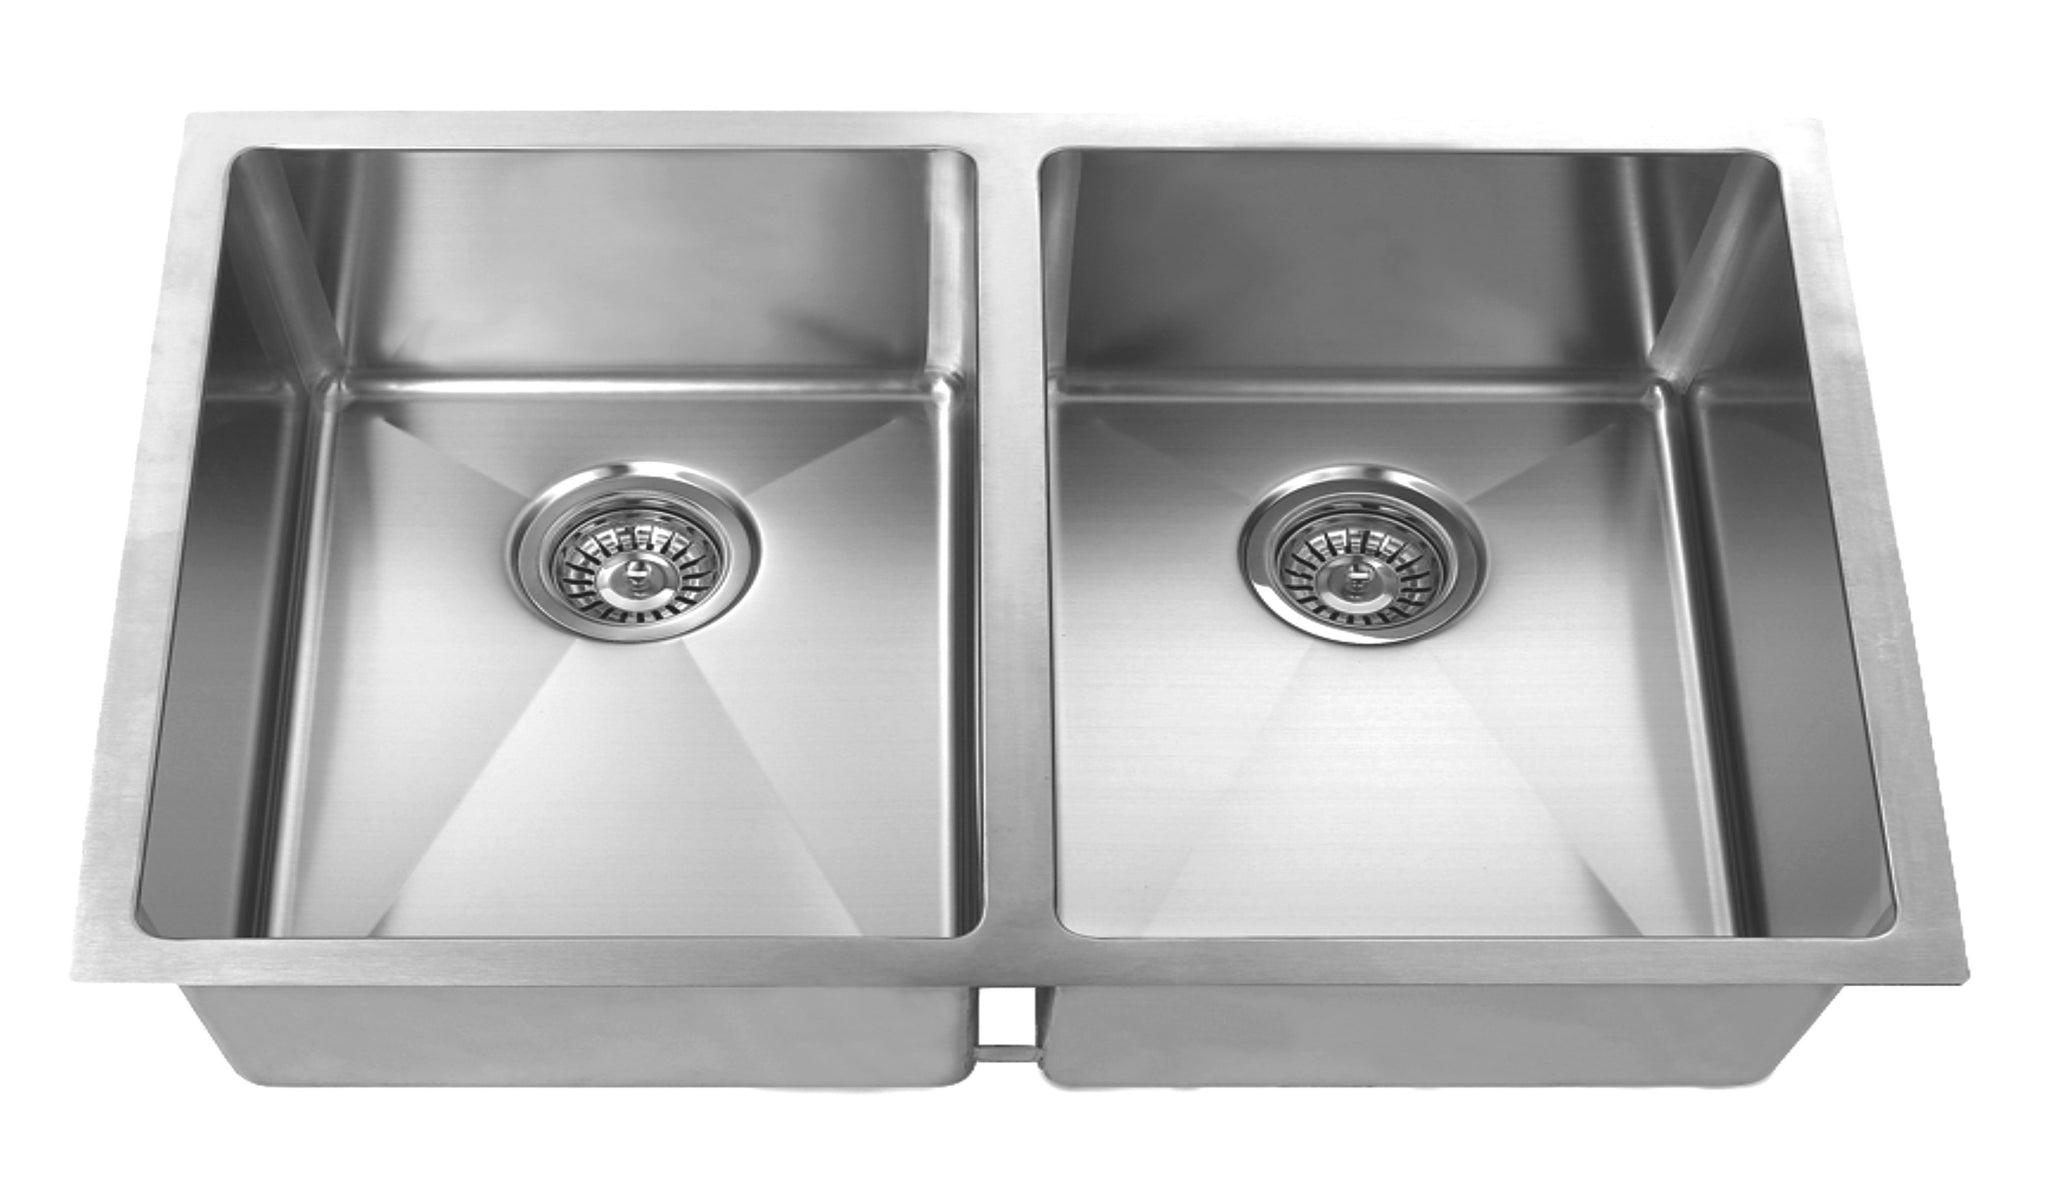 Medium image of     32 inch undermount stainless steel kitchen sink set  double bowl